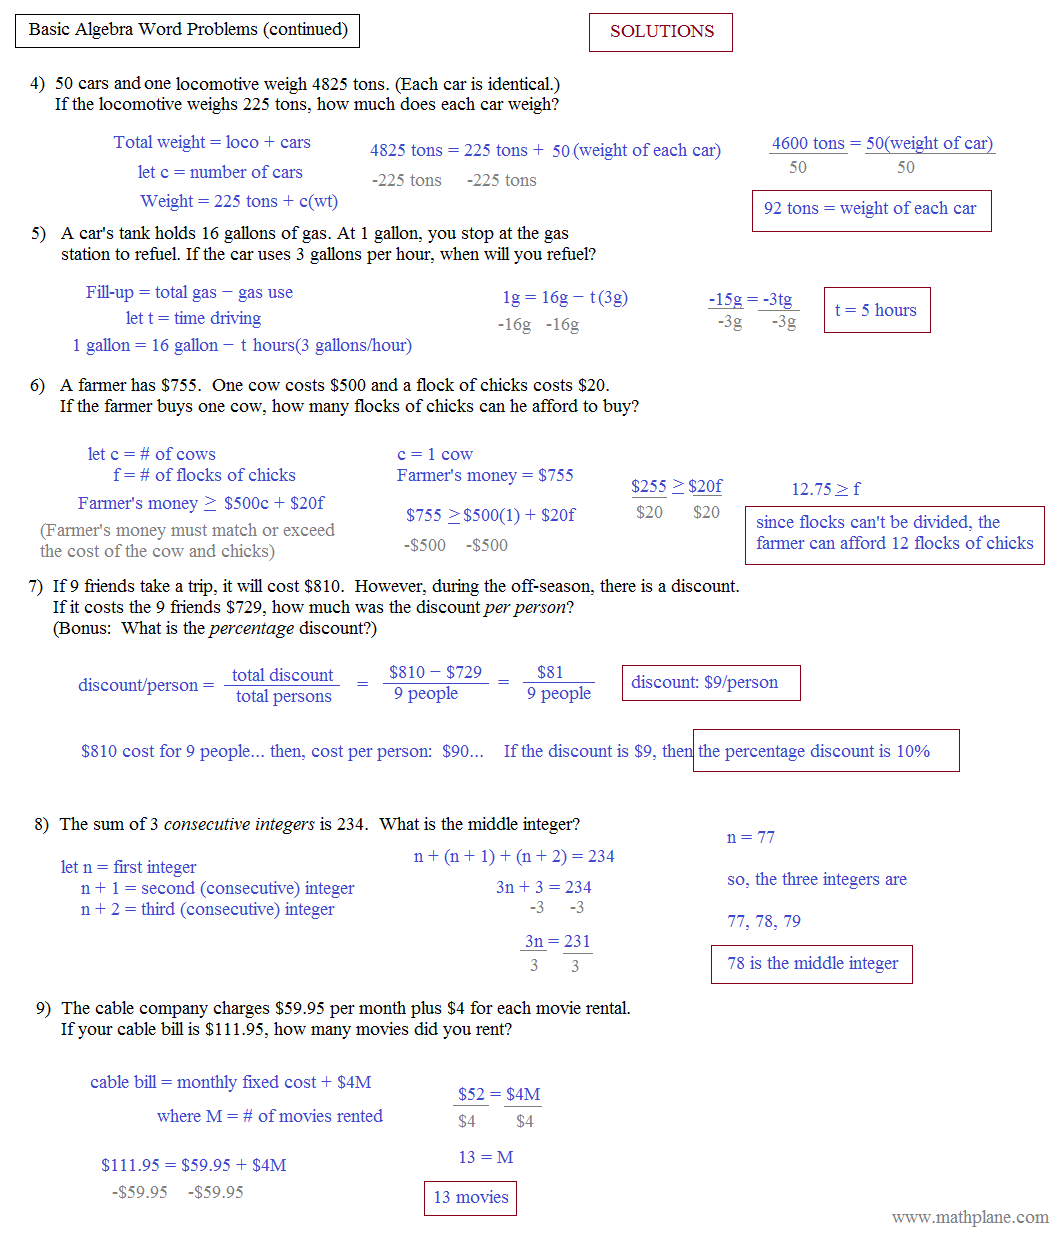 Worksheet Quadratic Formula Word Problems Worksheet Answers math plane algebra word problems basic 2 solutions